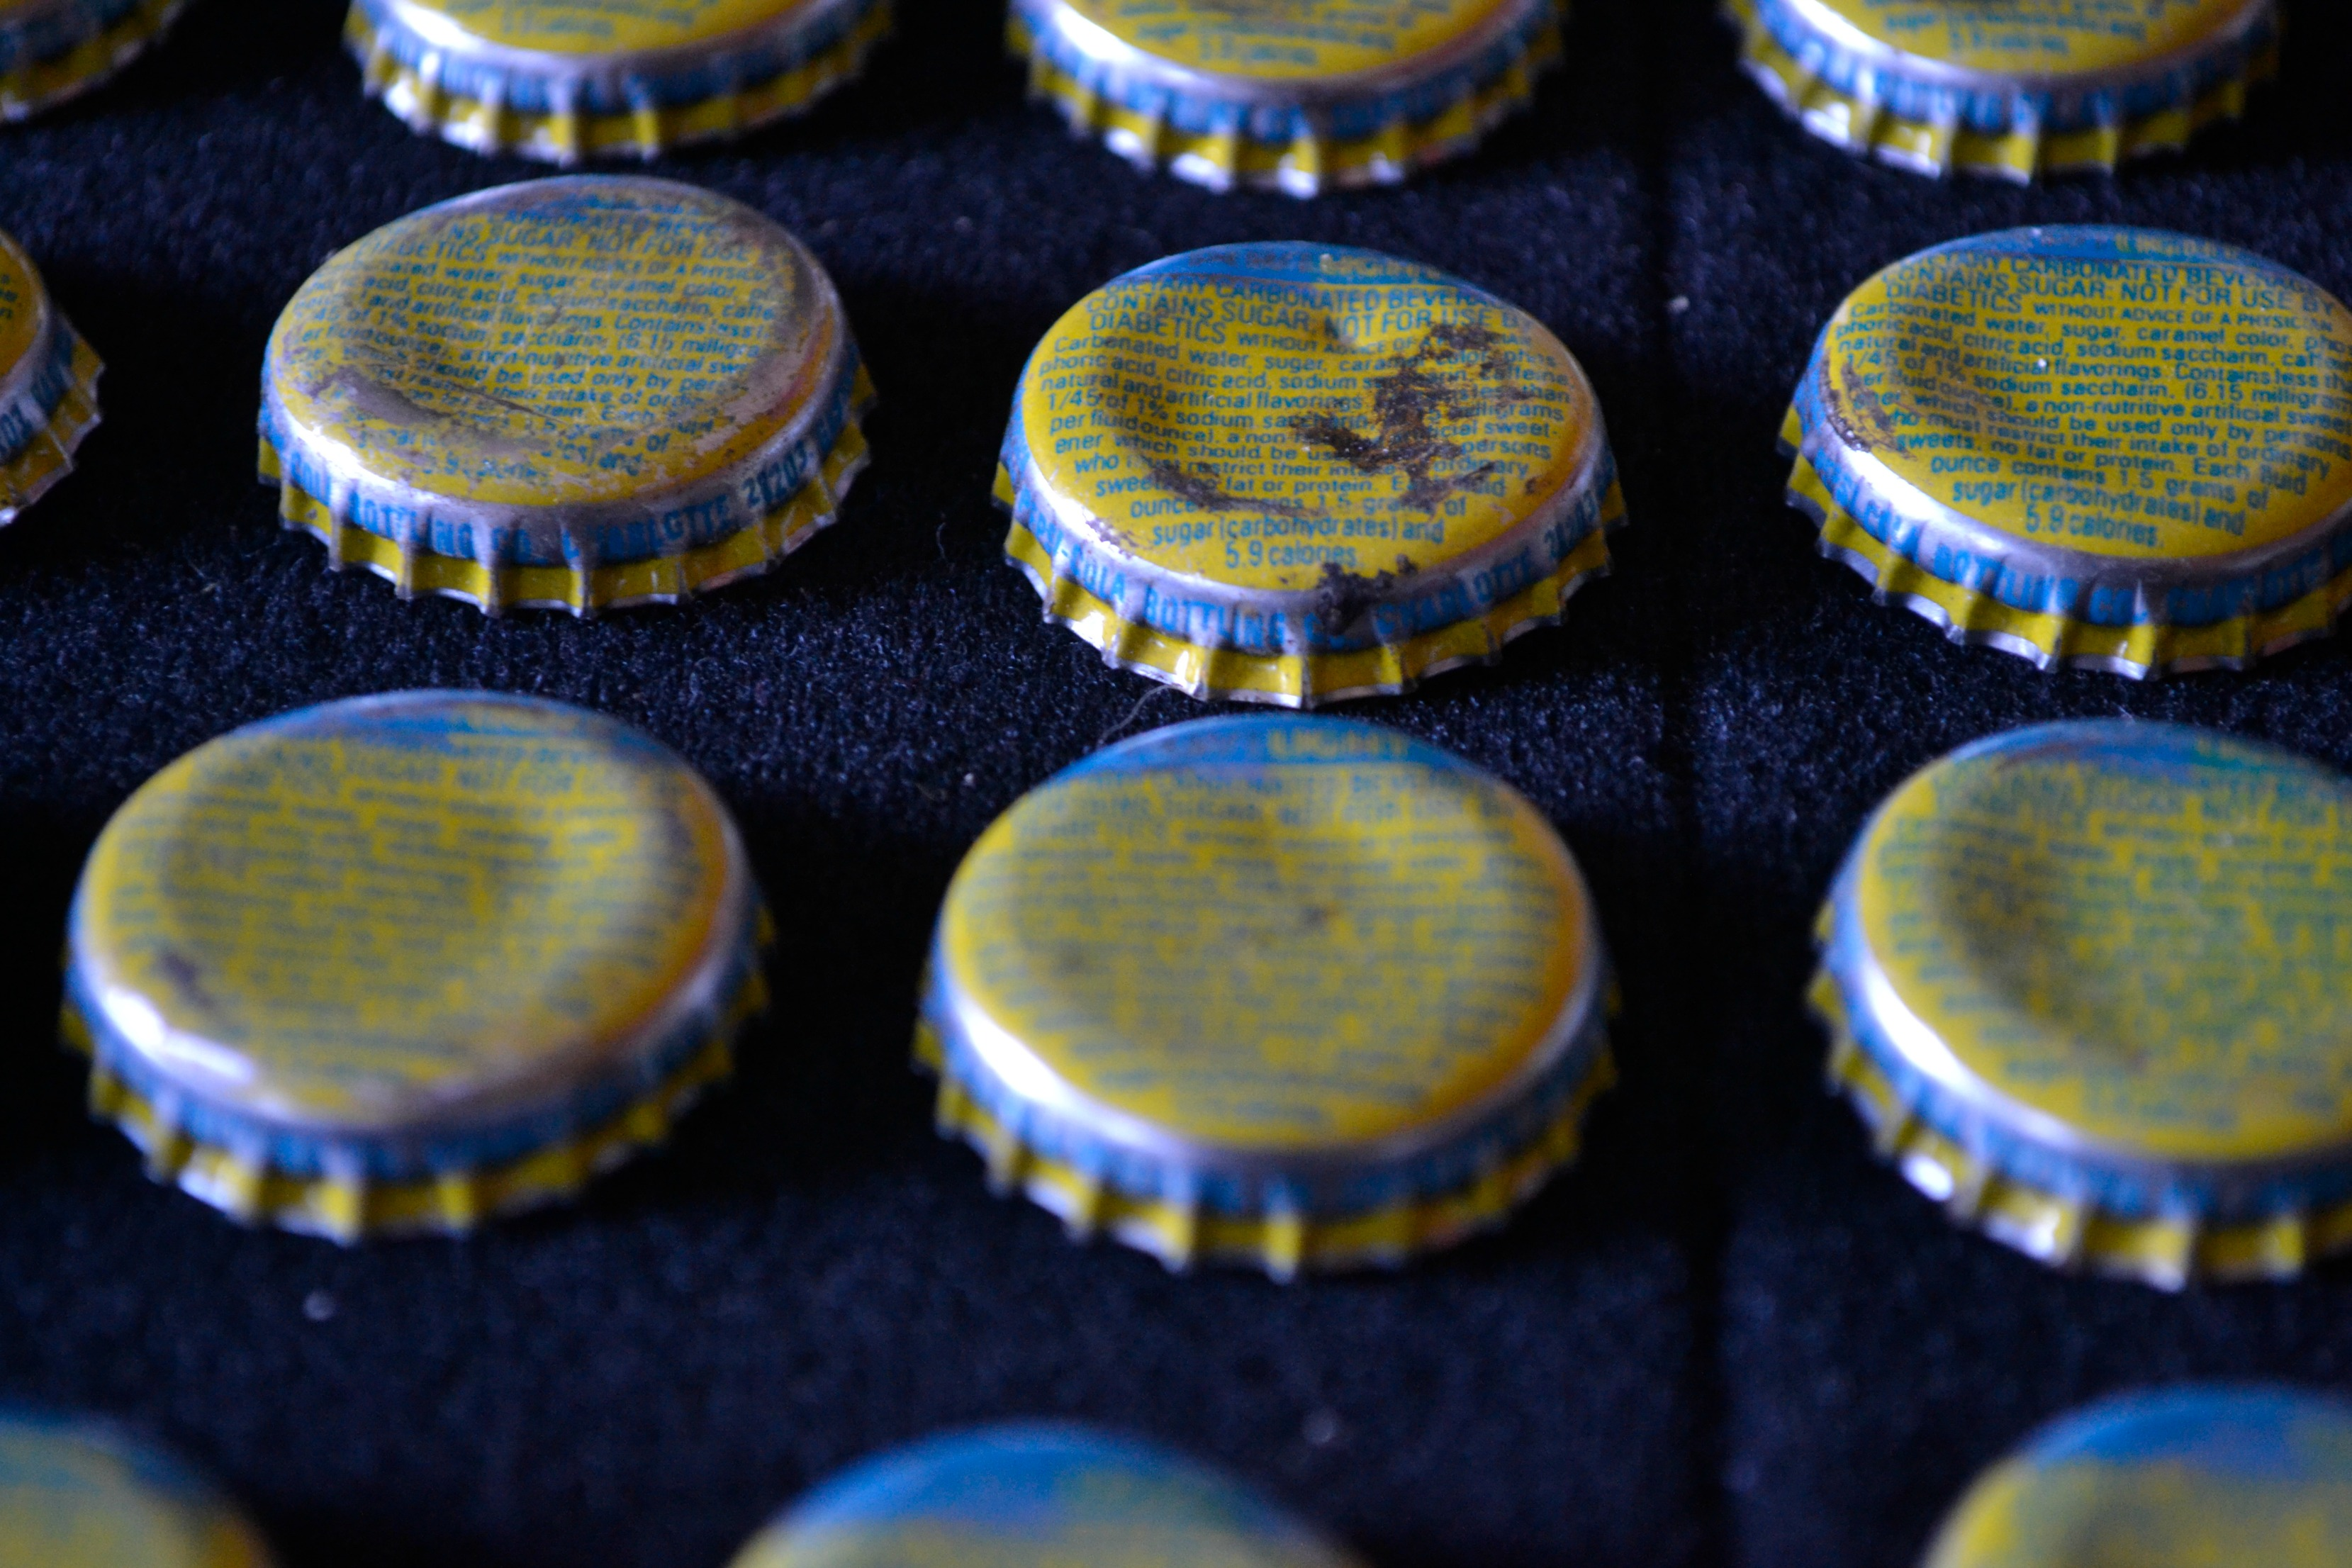 pepsi light bottle caps, vintage pepsi light bottle caps, vintage pepsi bottle caps